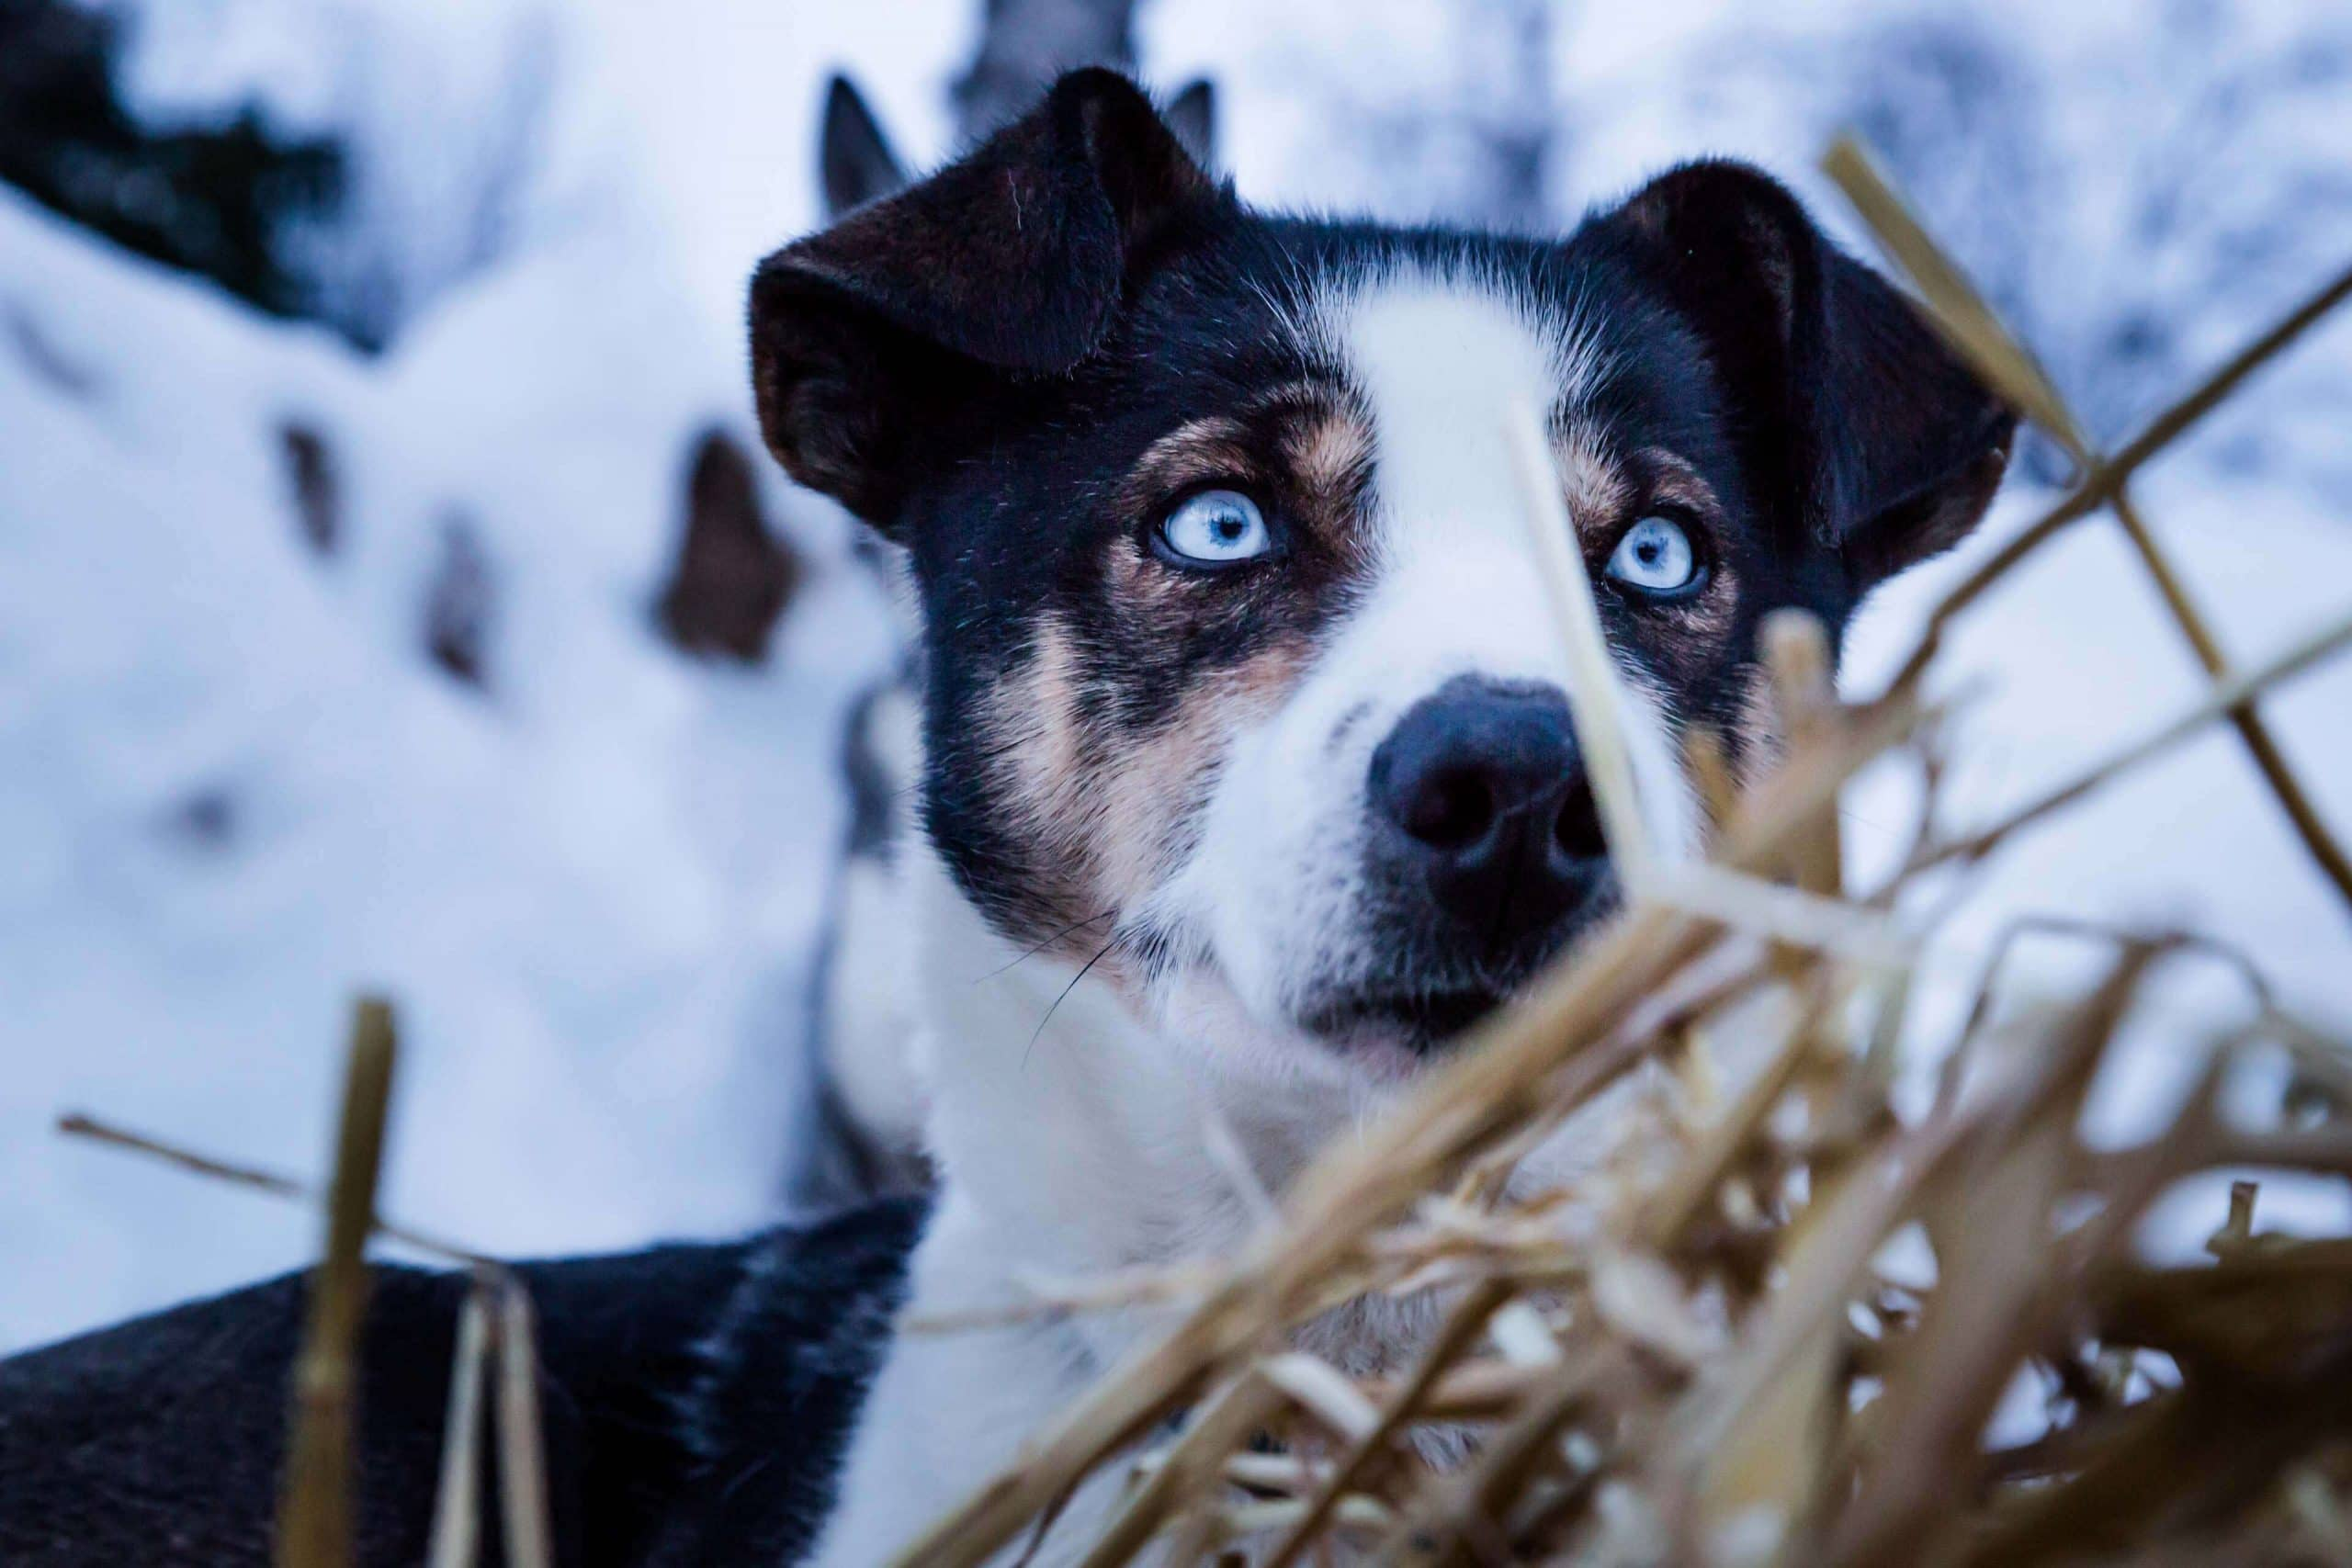 Dog Eye Infection: Reasons, Signs, and Treatment